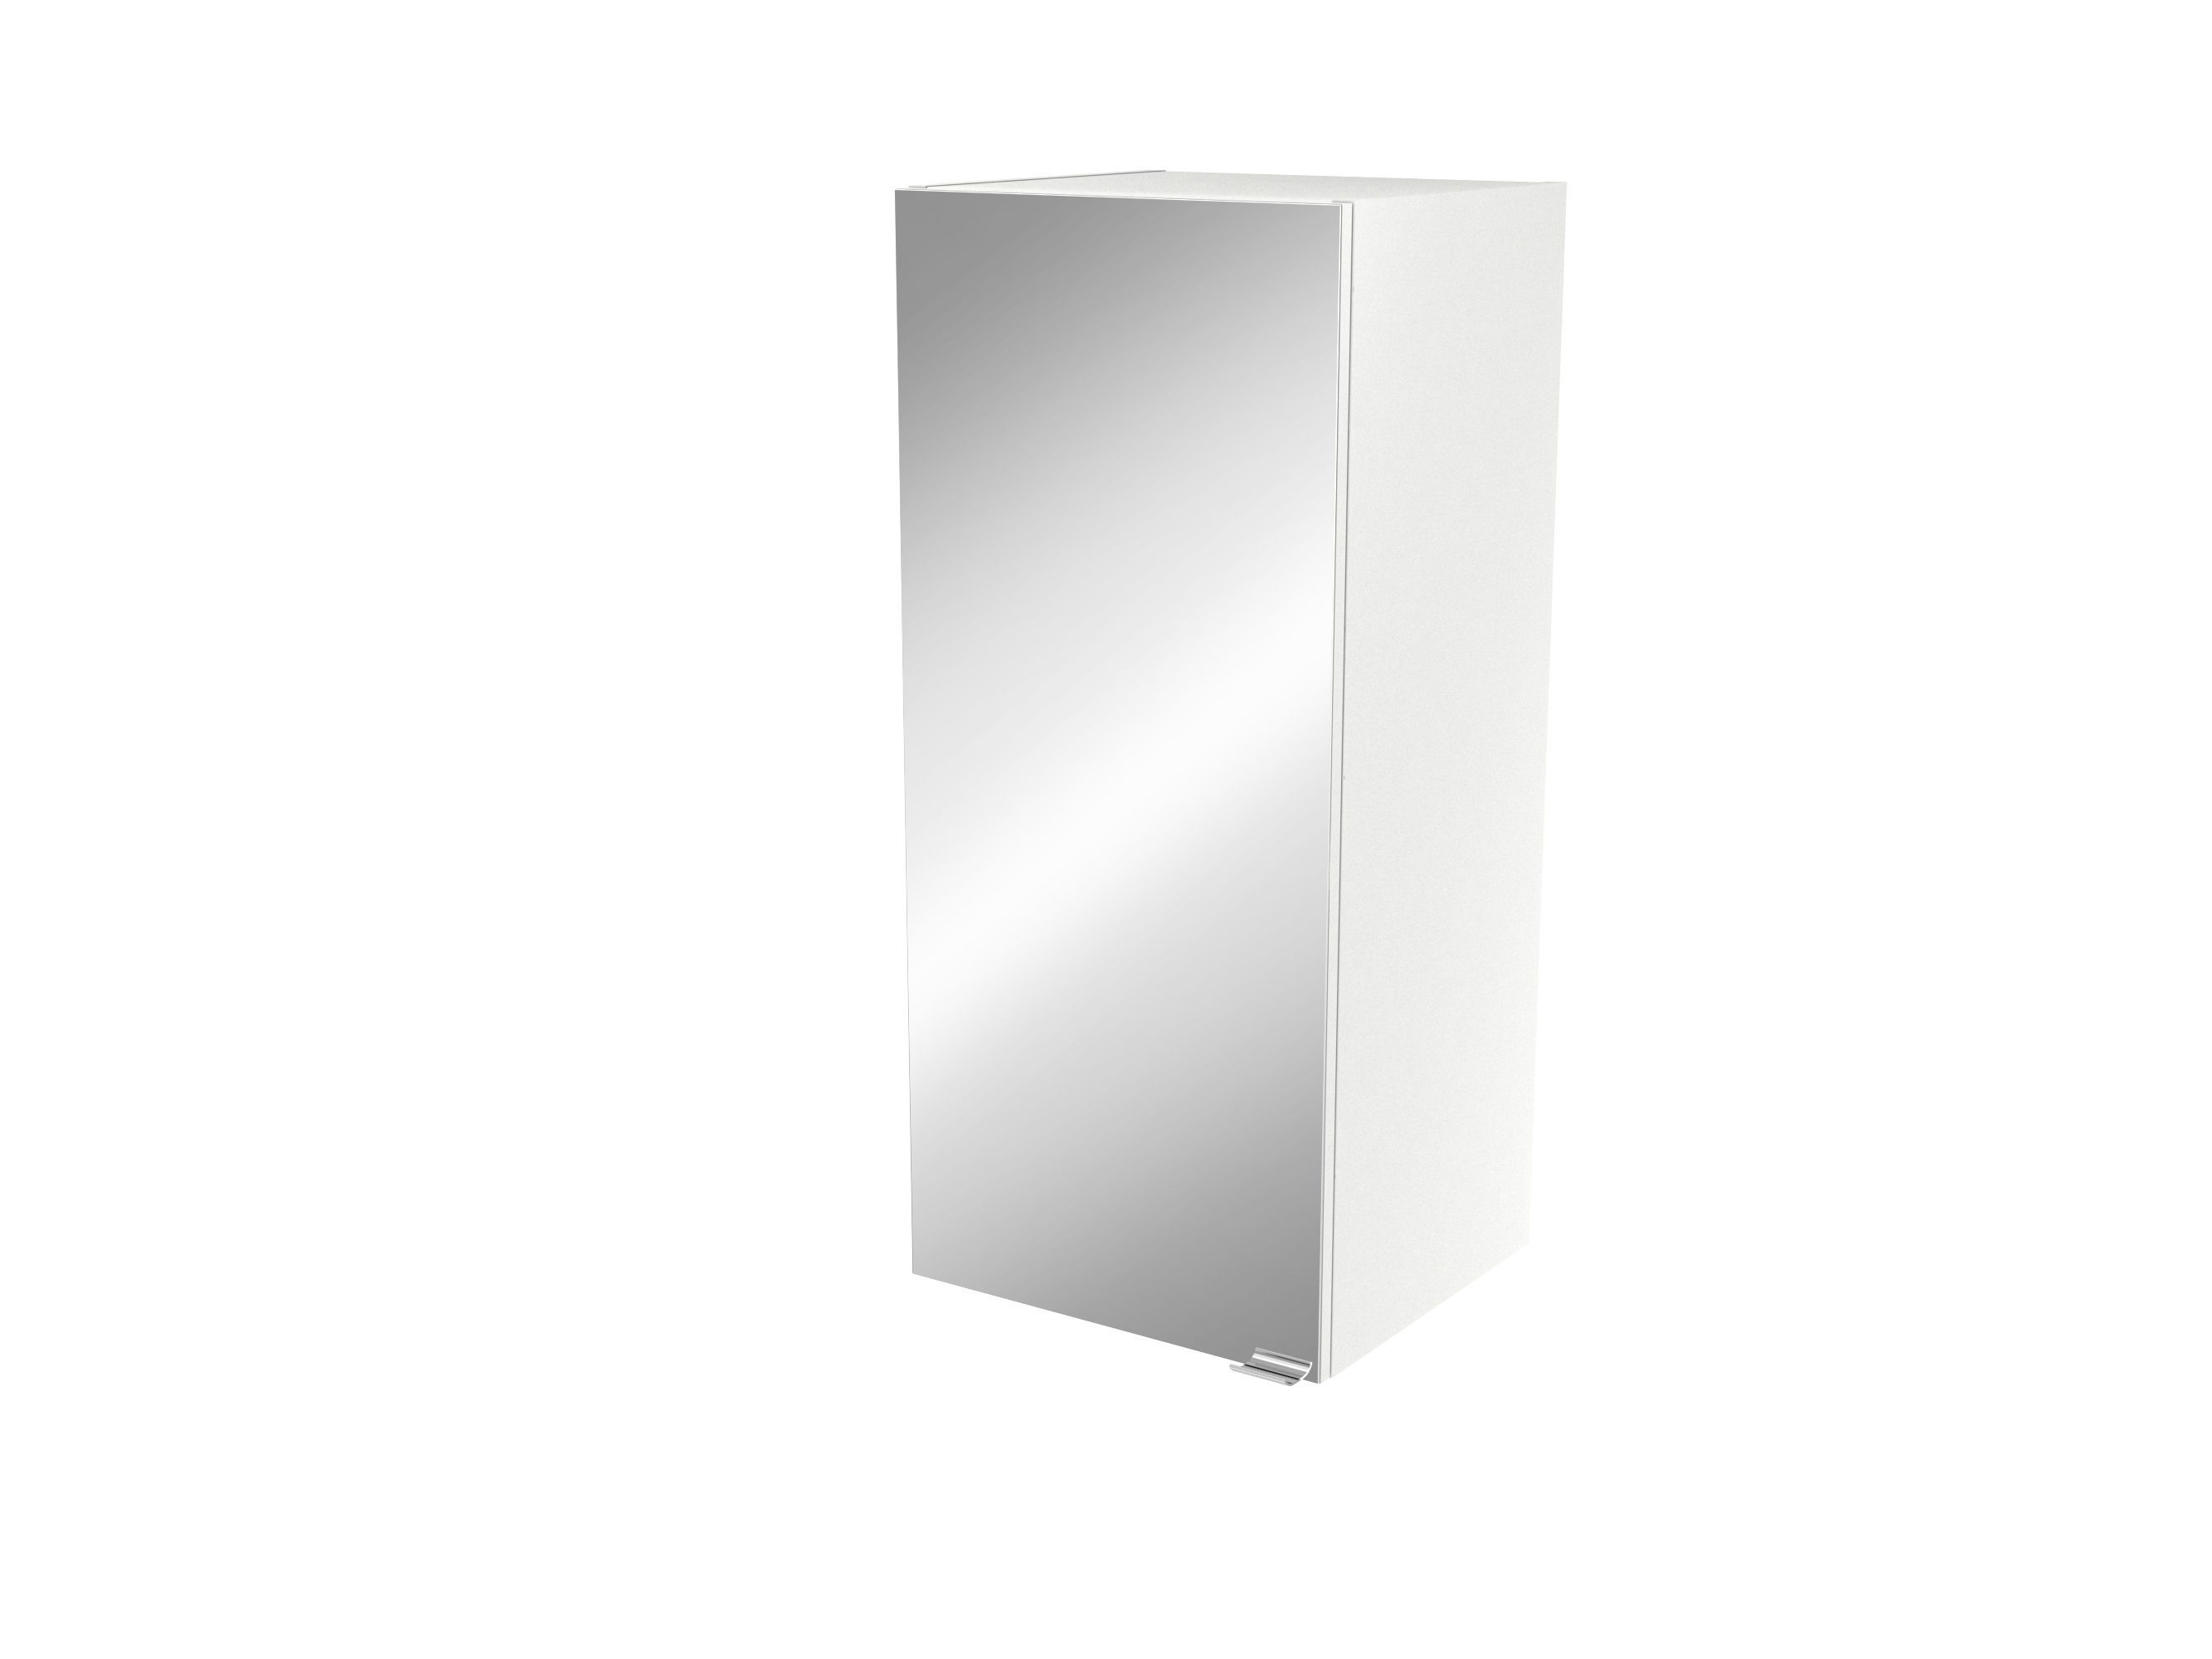 Cooke & Lewis Imandra Gloss White Deep Mirrored Wall Cabinet, (w)400mm